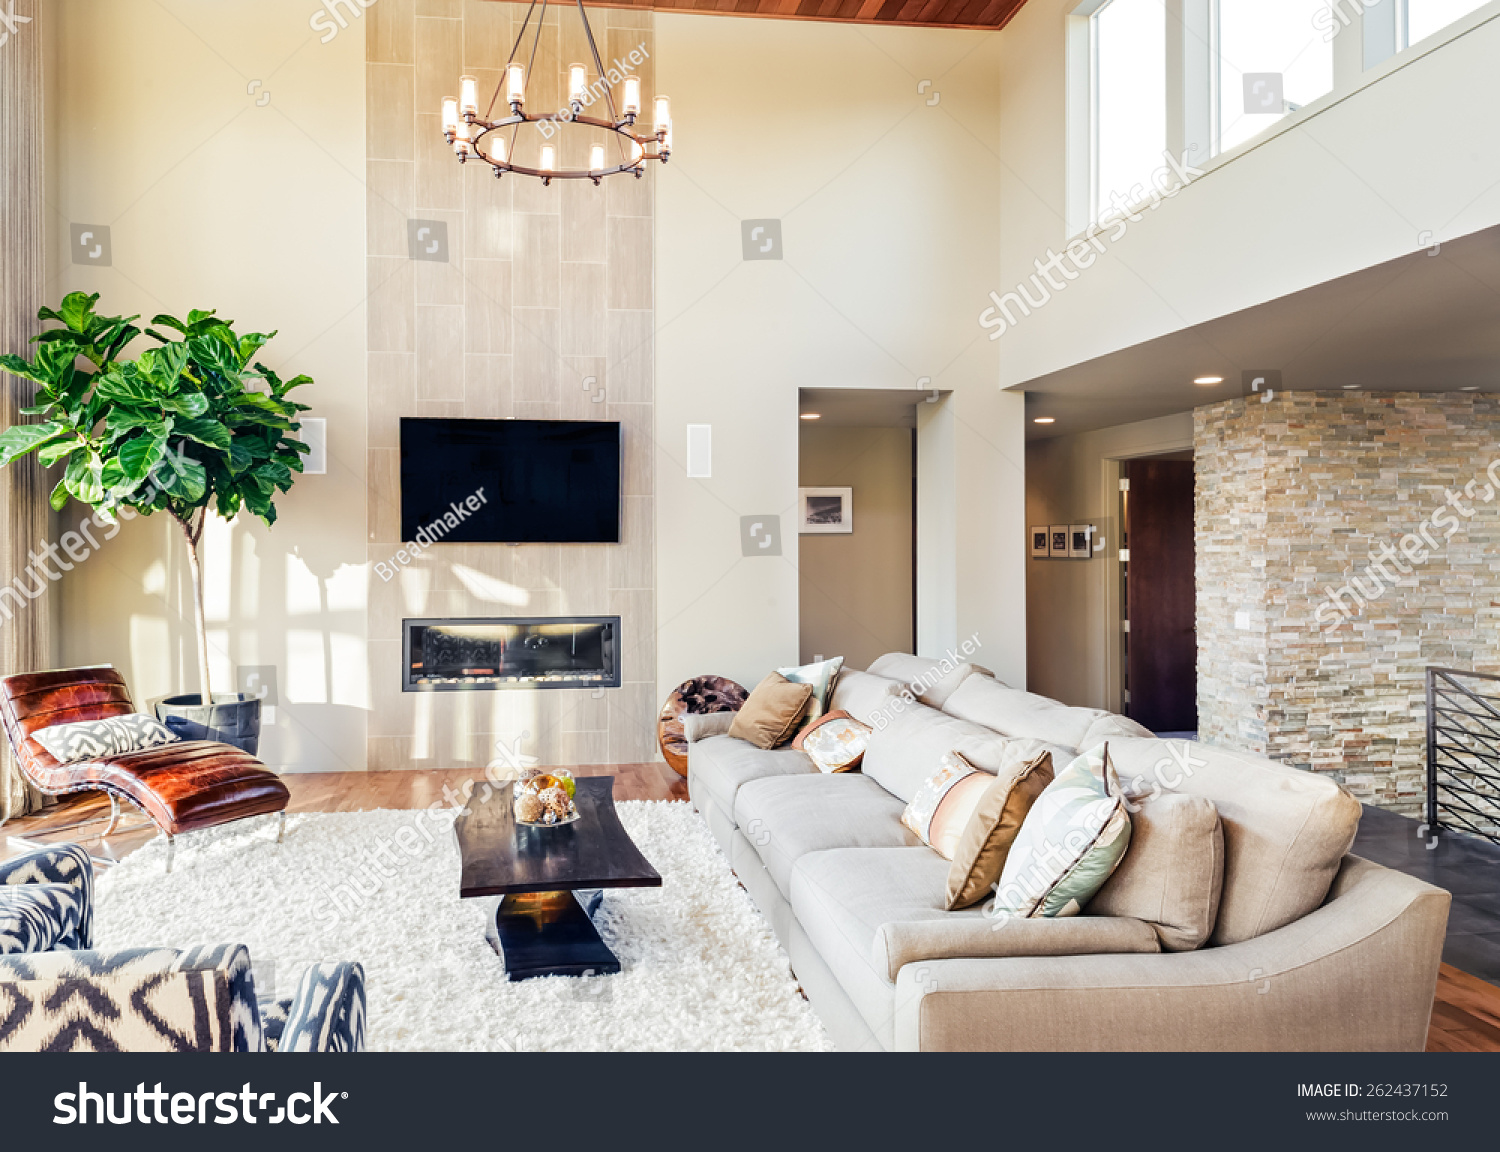 Beautiful living room hardwood floors tv stock photo 262437152 shutterstock - Beautifull rooms ...